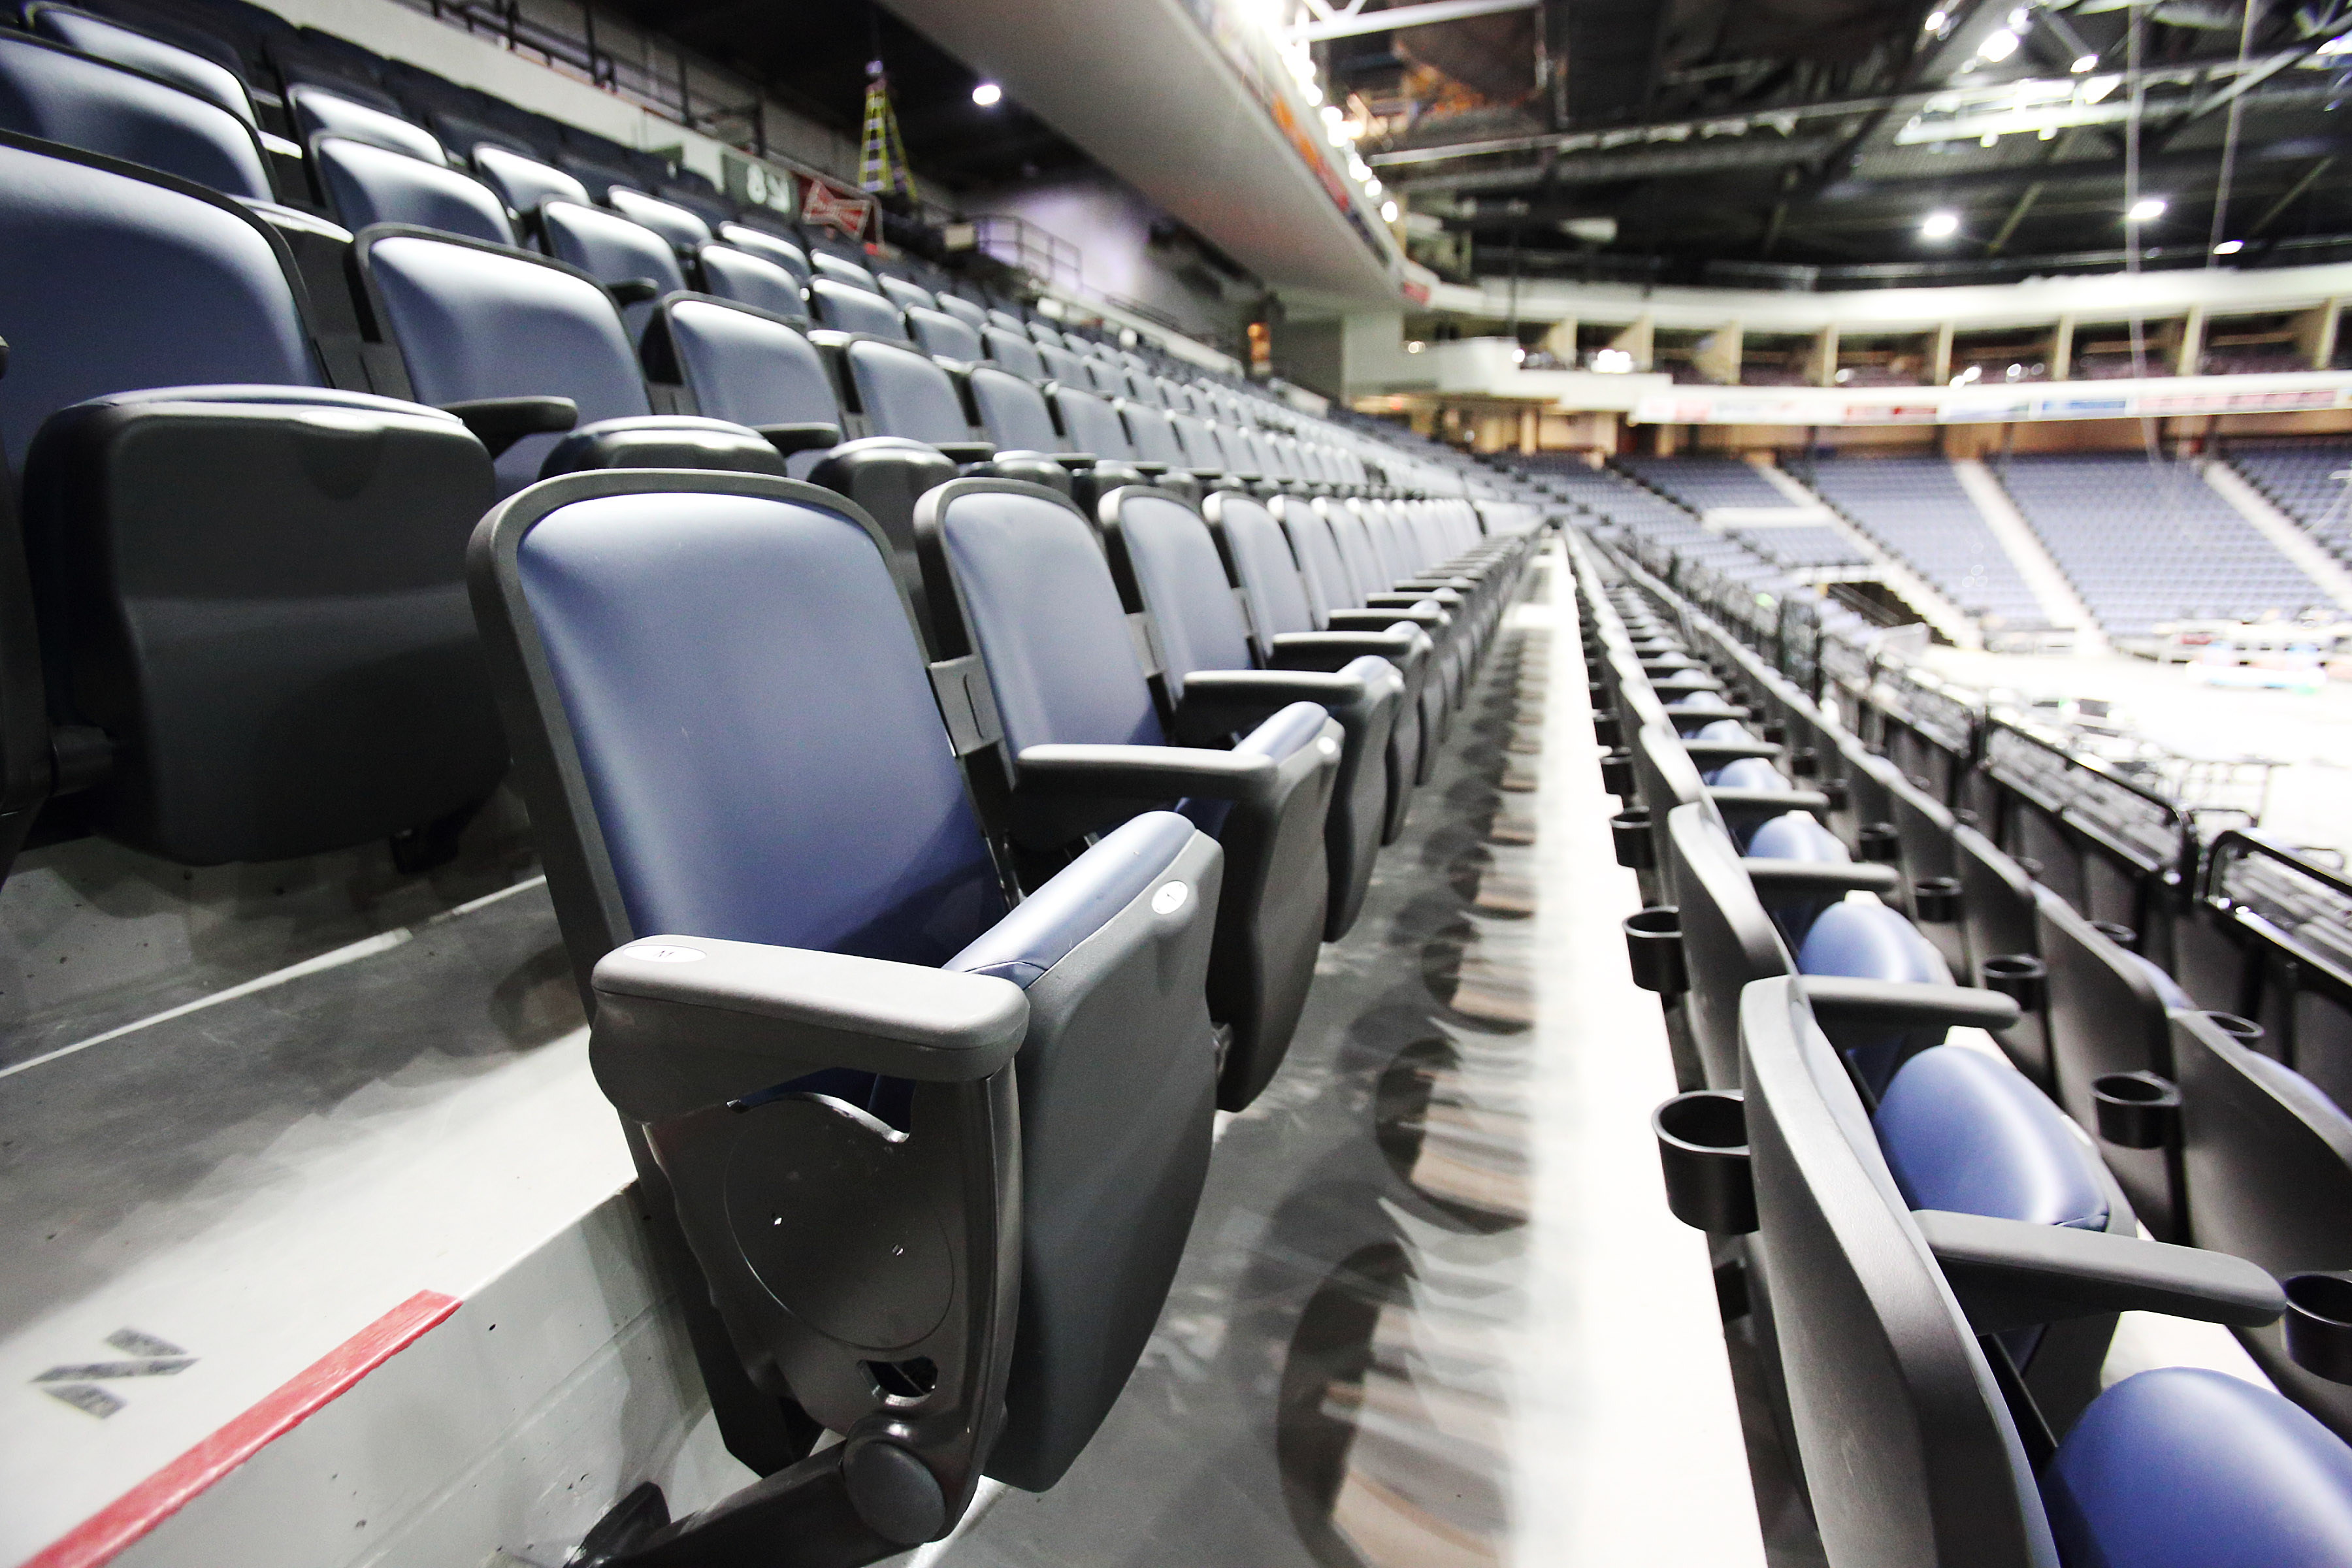 VIDEO: Newly renovated Scotiabank Centre unveiled